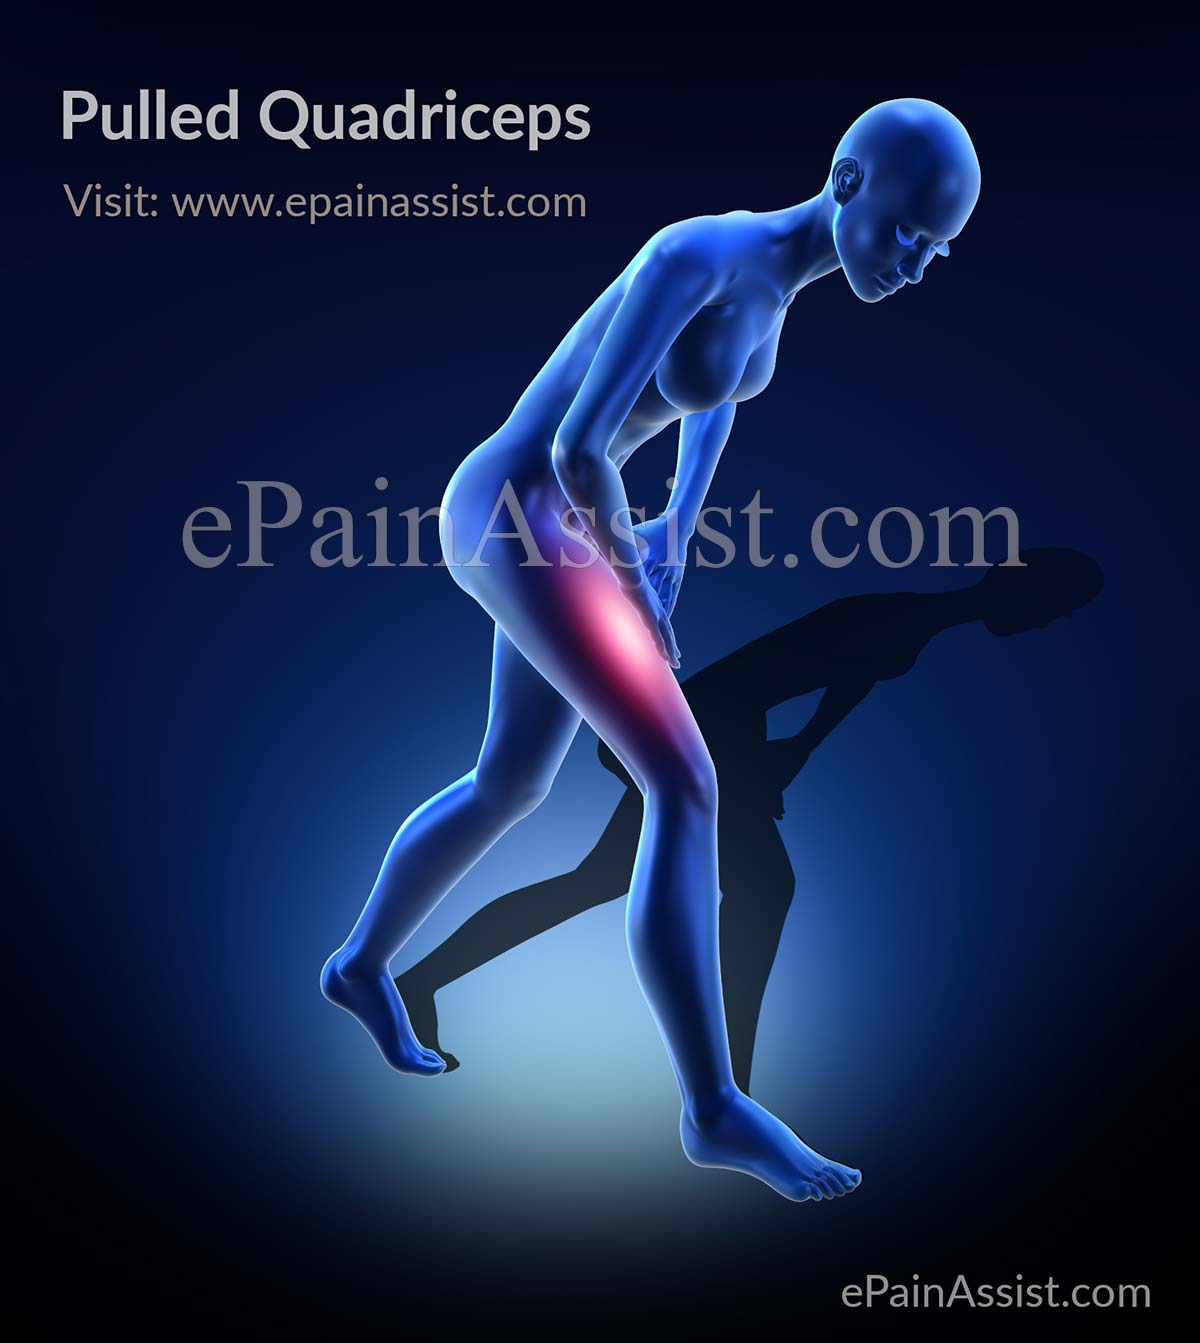 Pulled Quadriceps